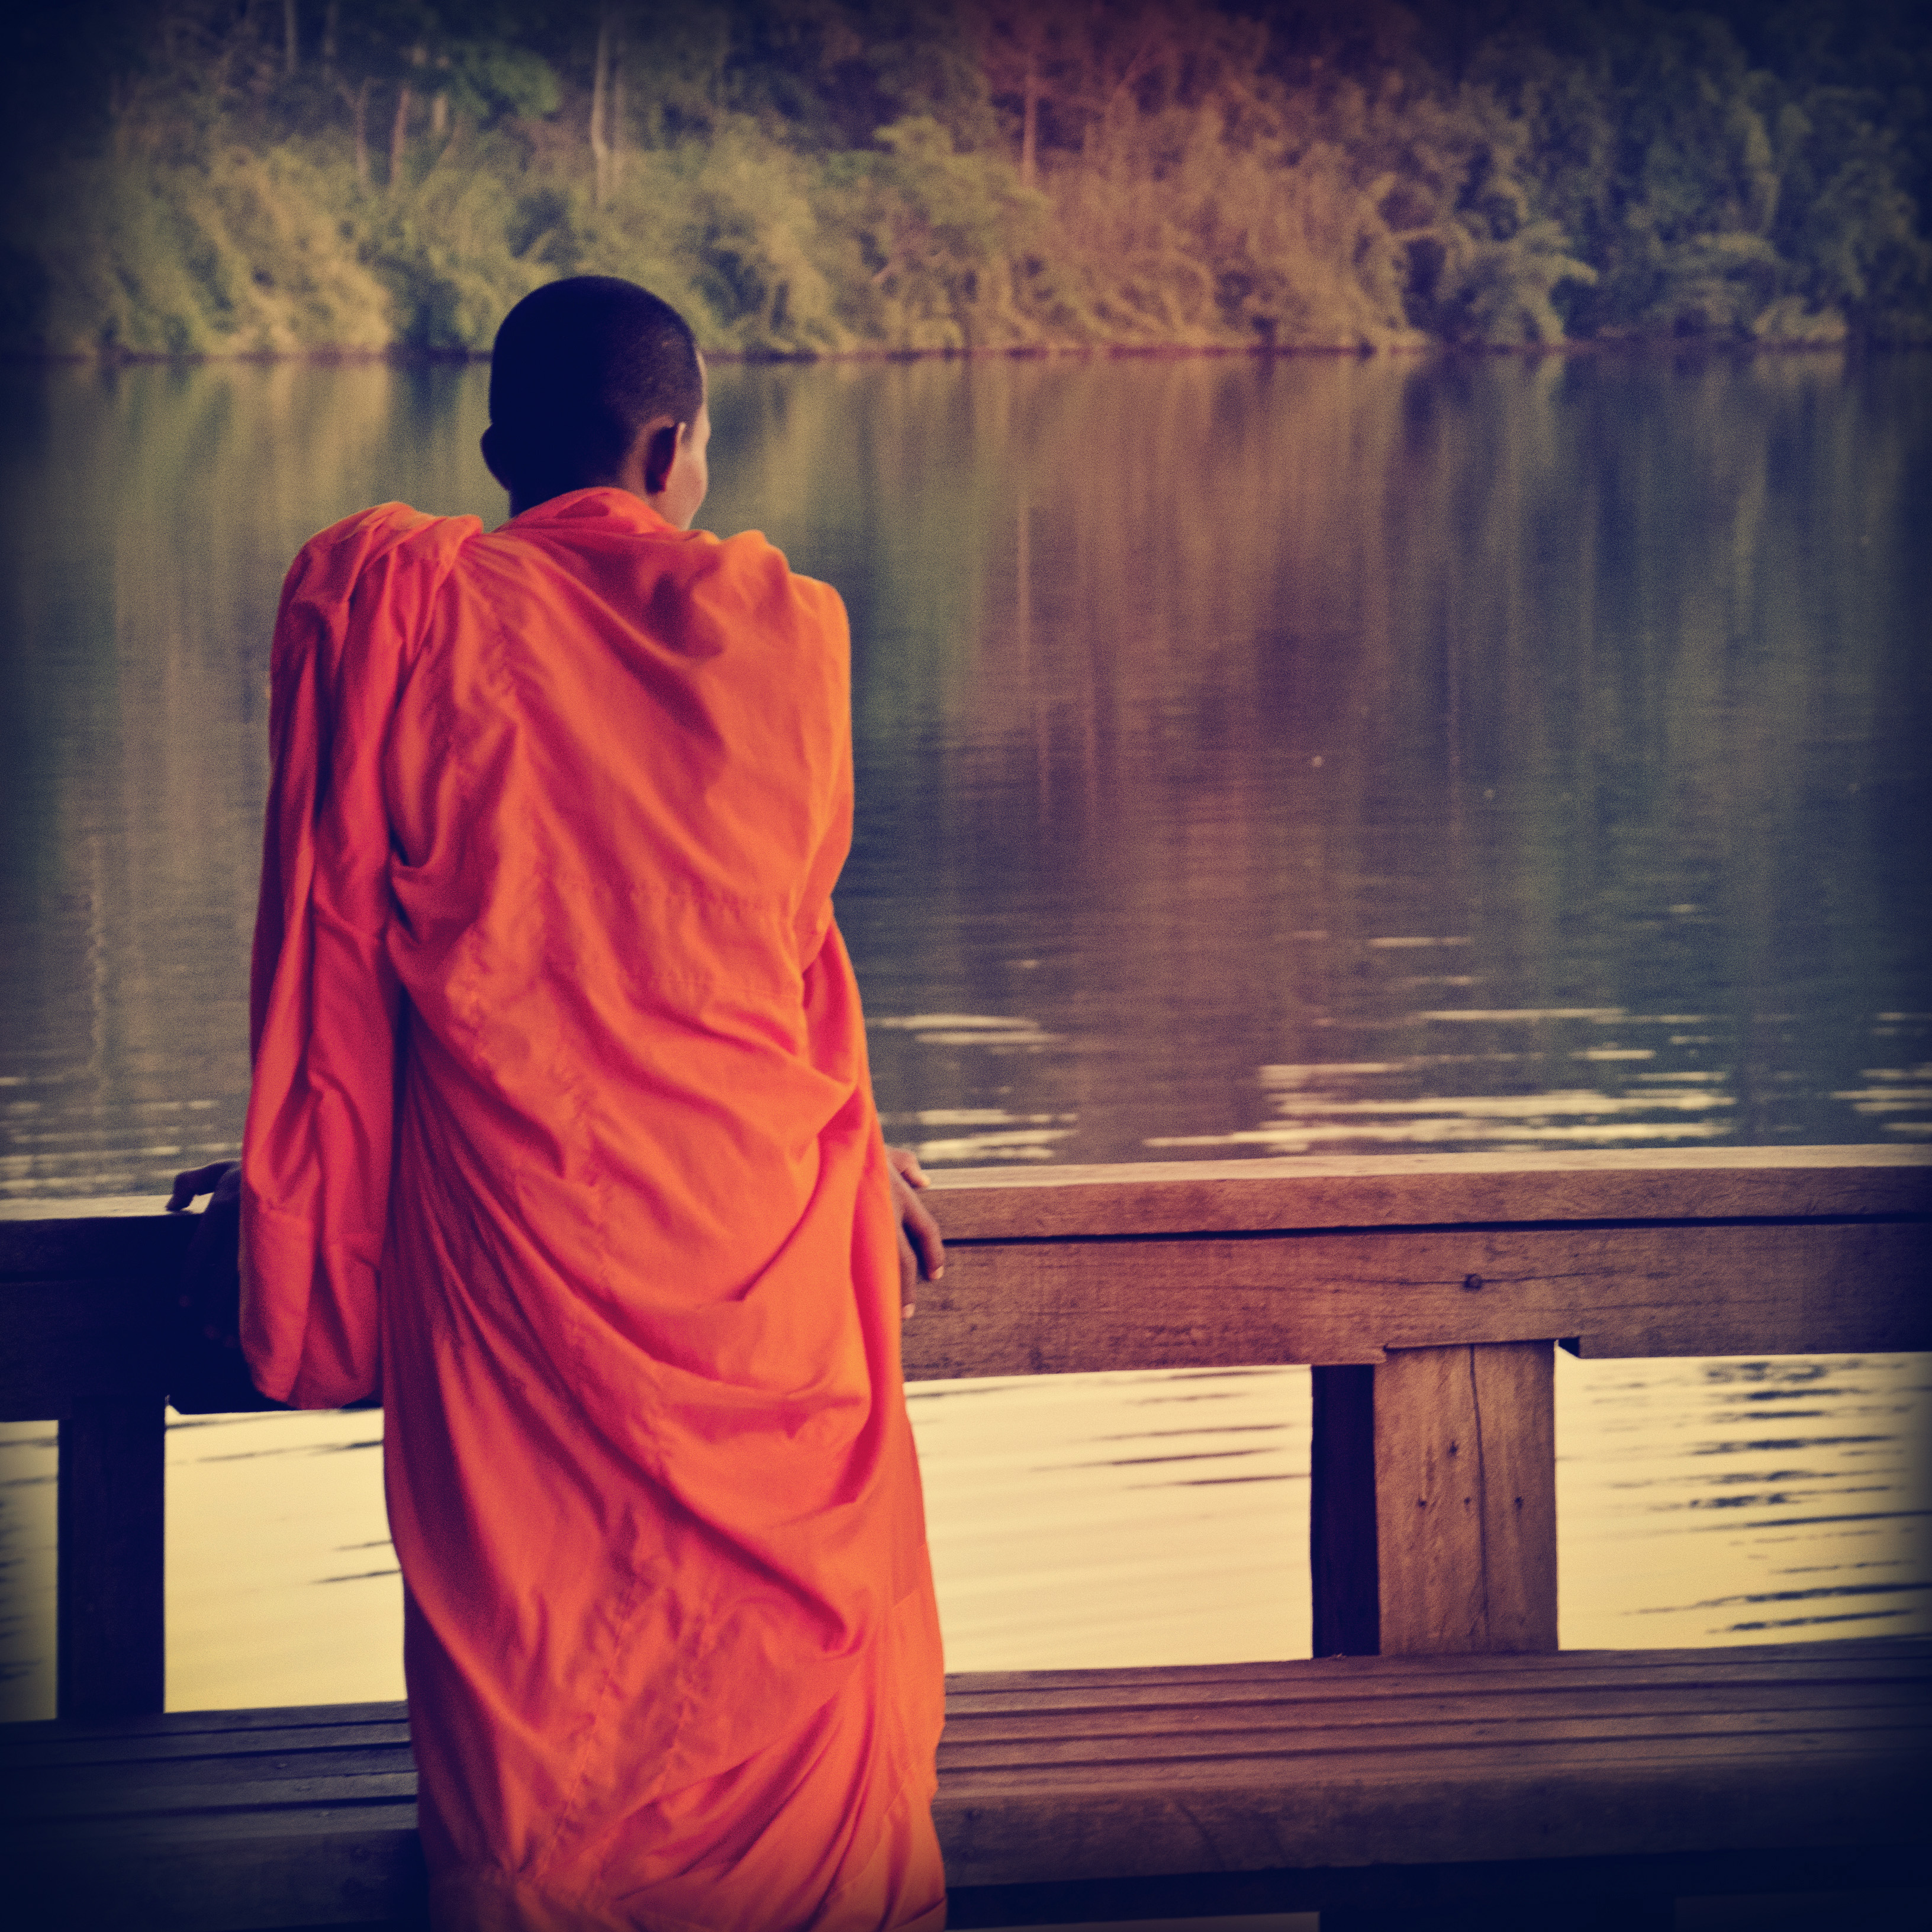 buddhist monk in cambodia, looking at the view